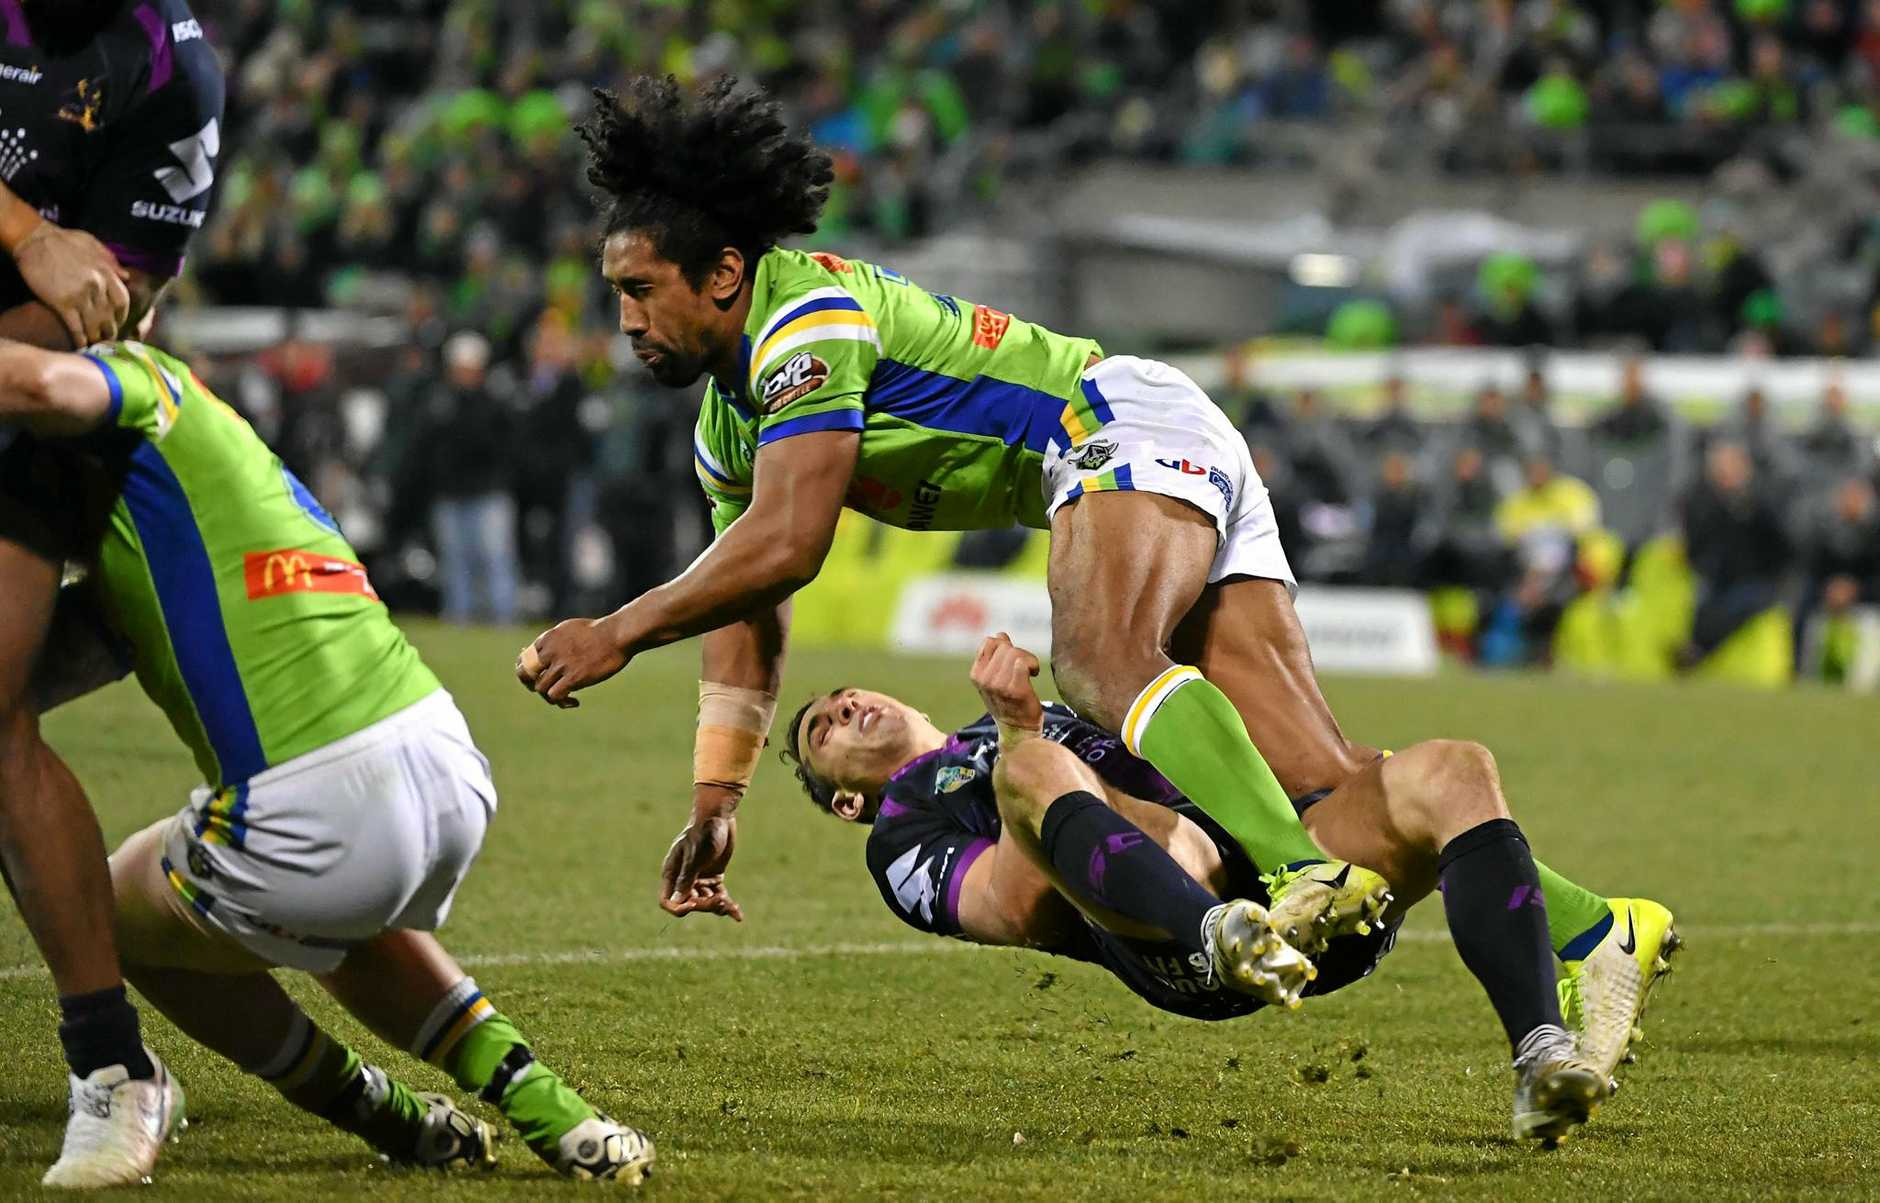 Raiders forward Iosia Soliola irons out Storm fullback Billy Slater after he had offloaded the ball during their Round 20 clash.